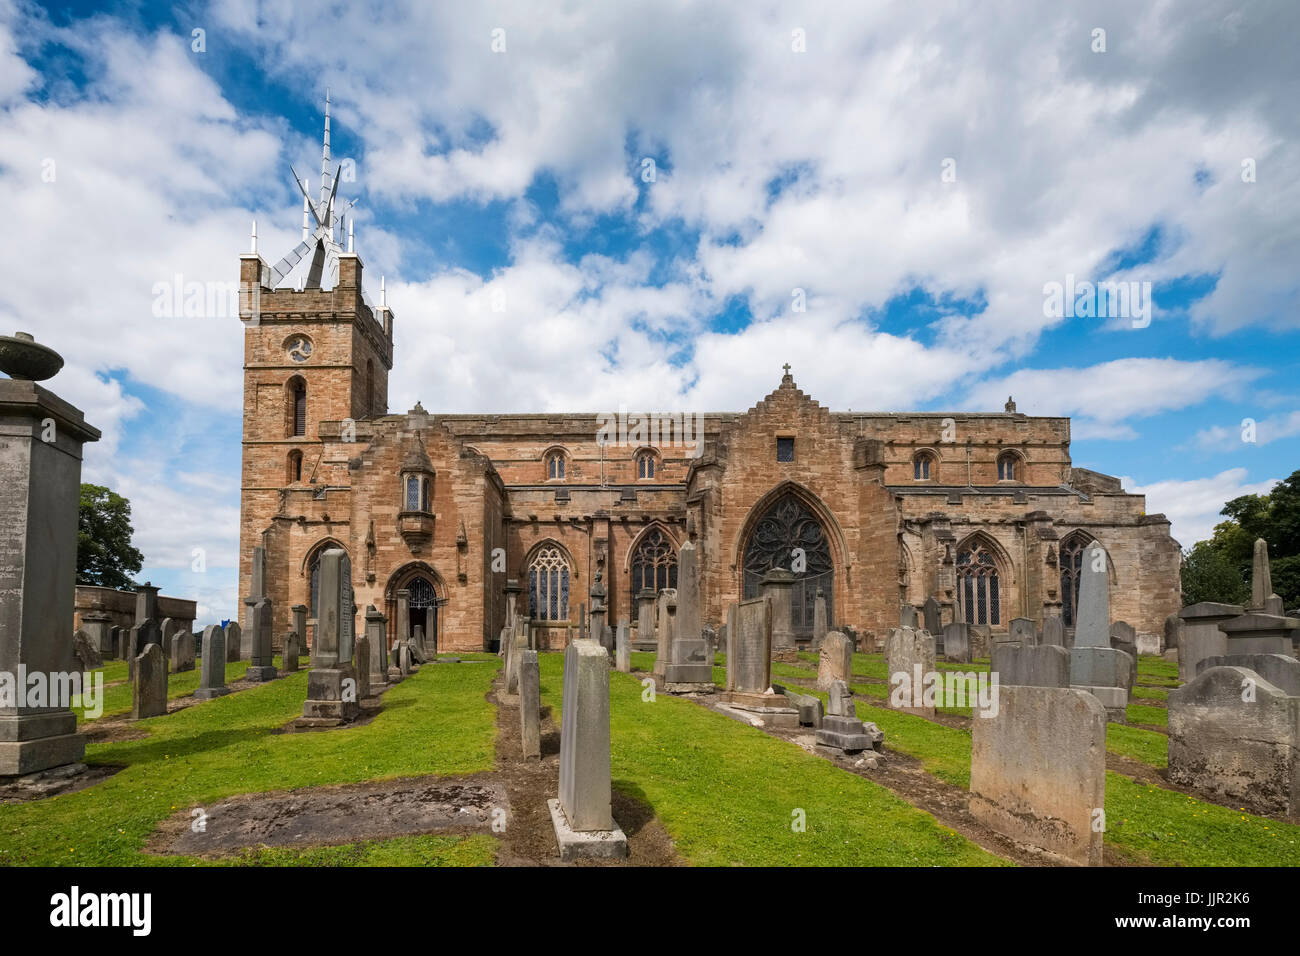 Church of St Michael's parish at Linlithgow Palace in Scotland, United Kingdom Stock Photo